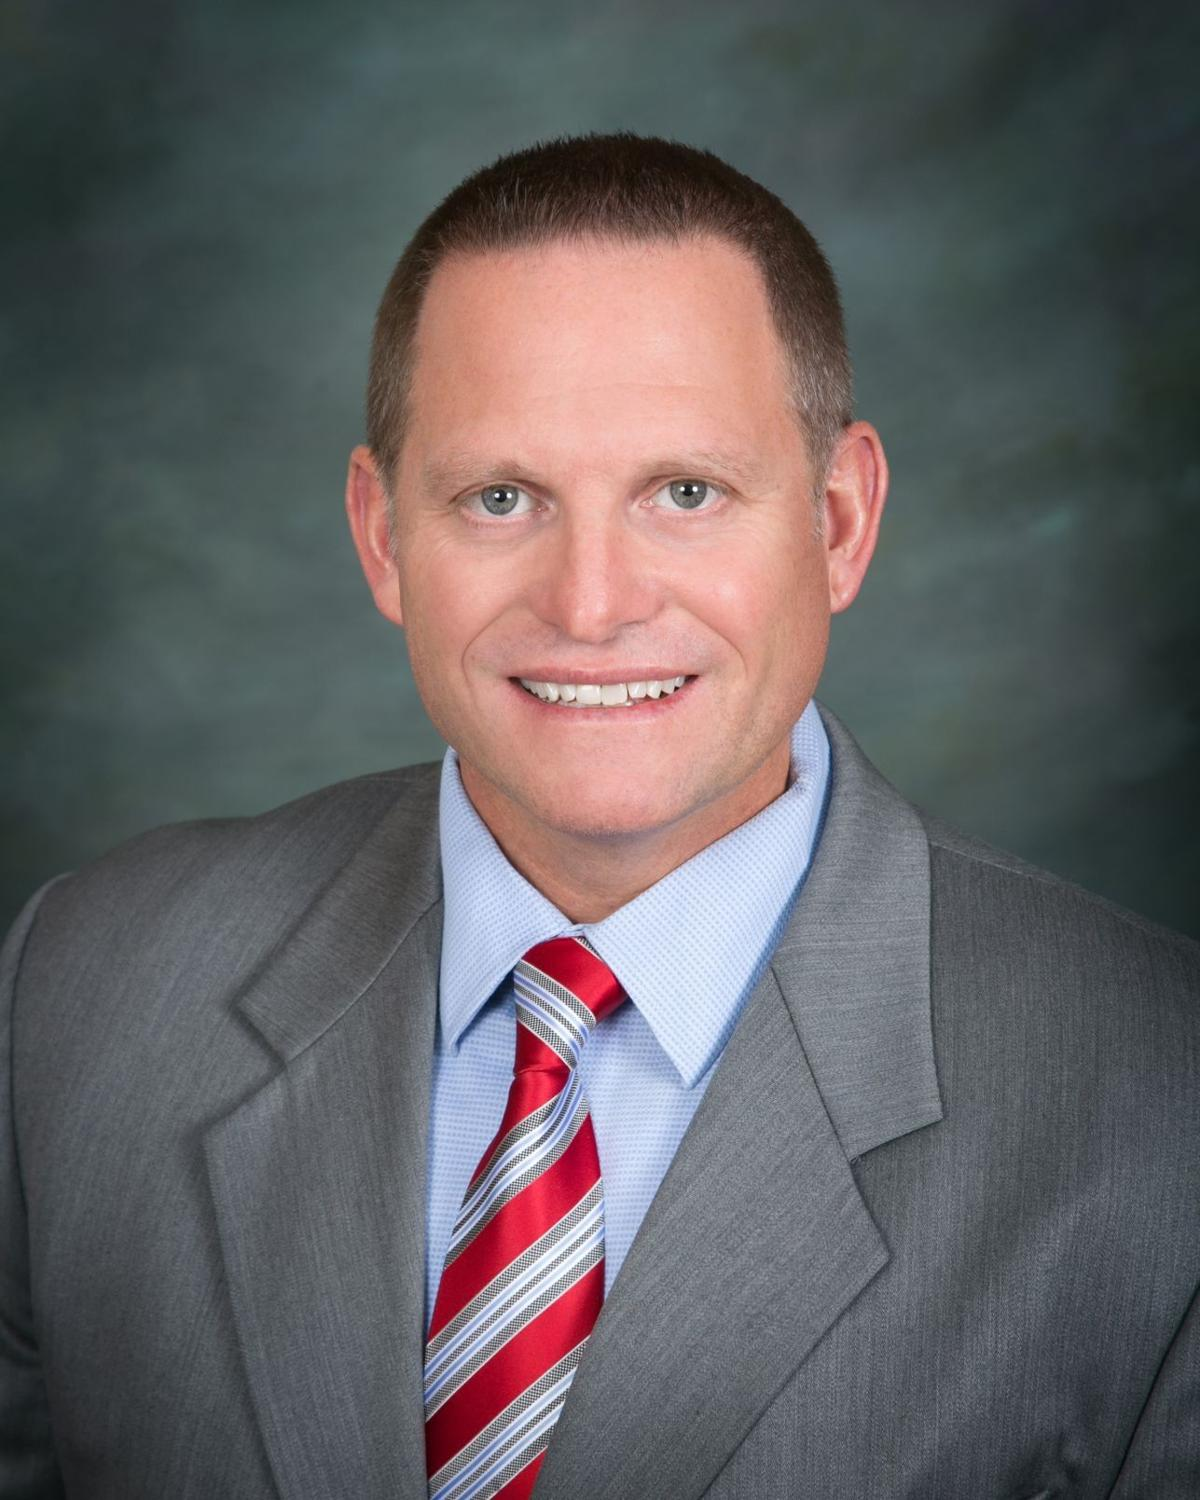 Troy Smith Payson town manager professional head shot